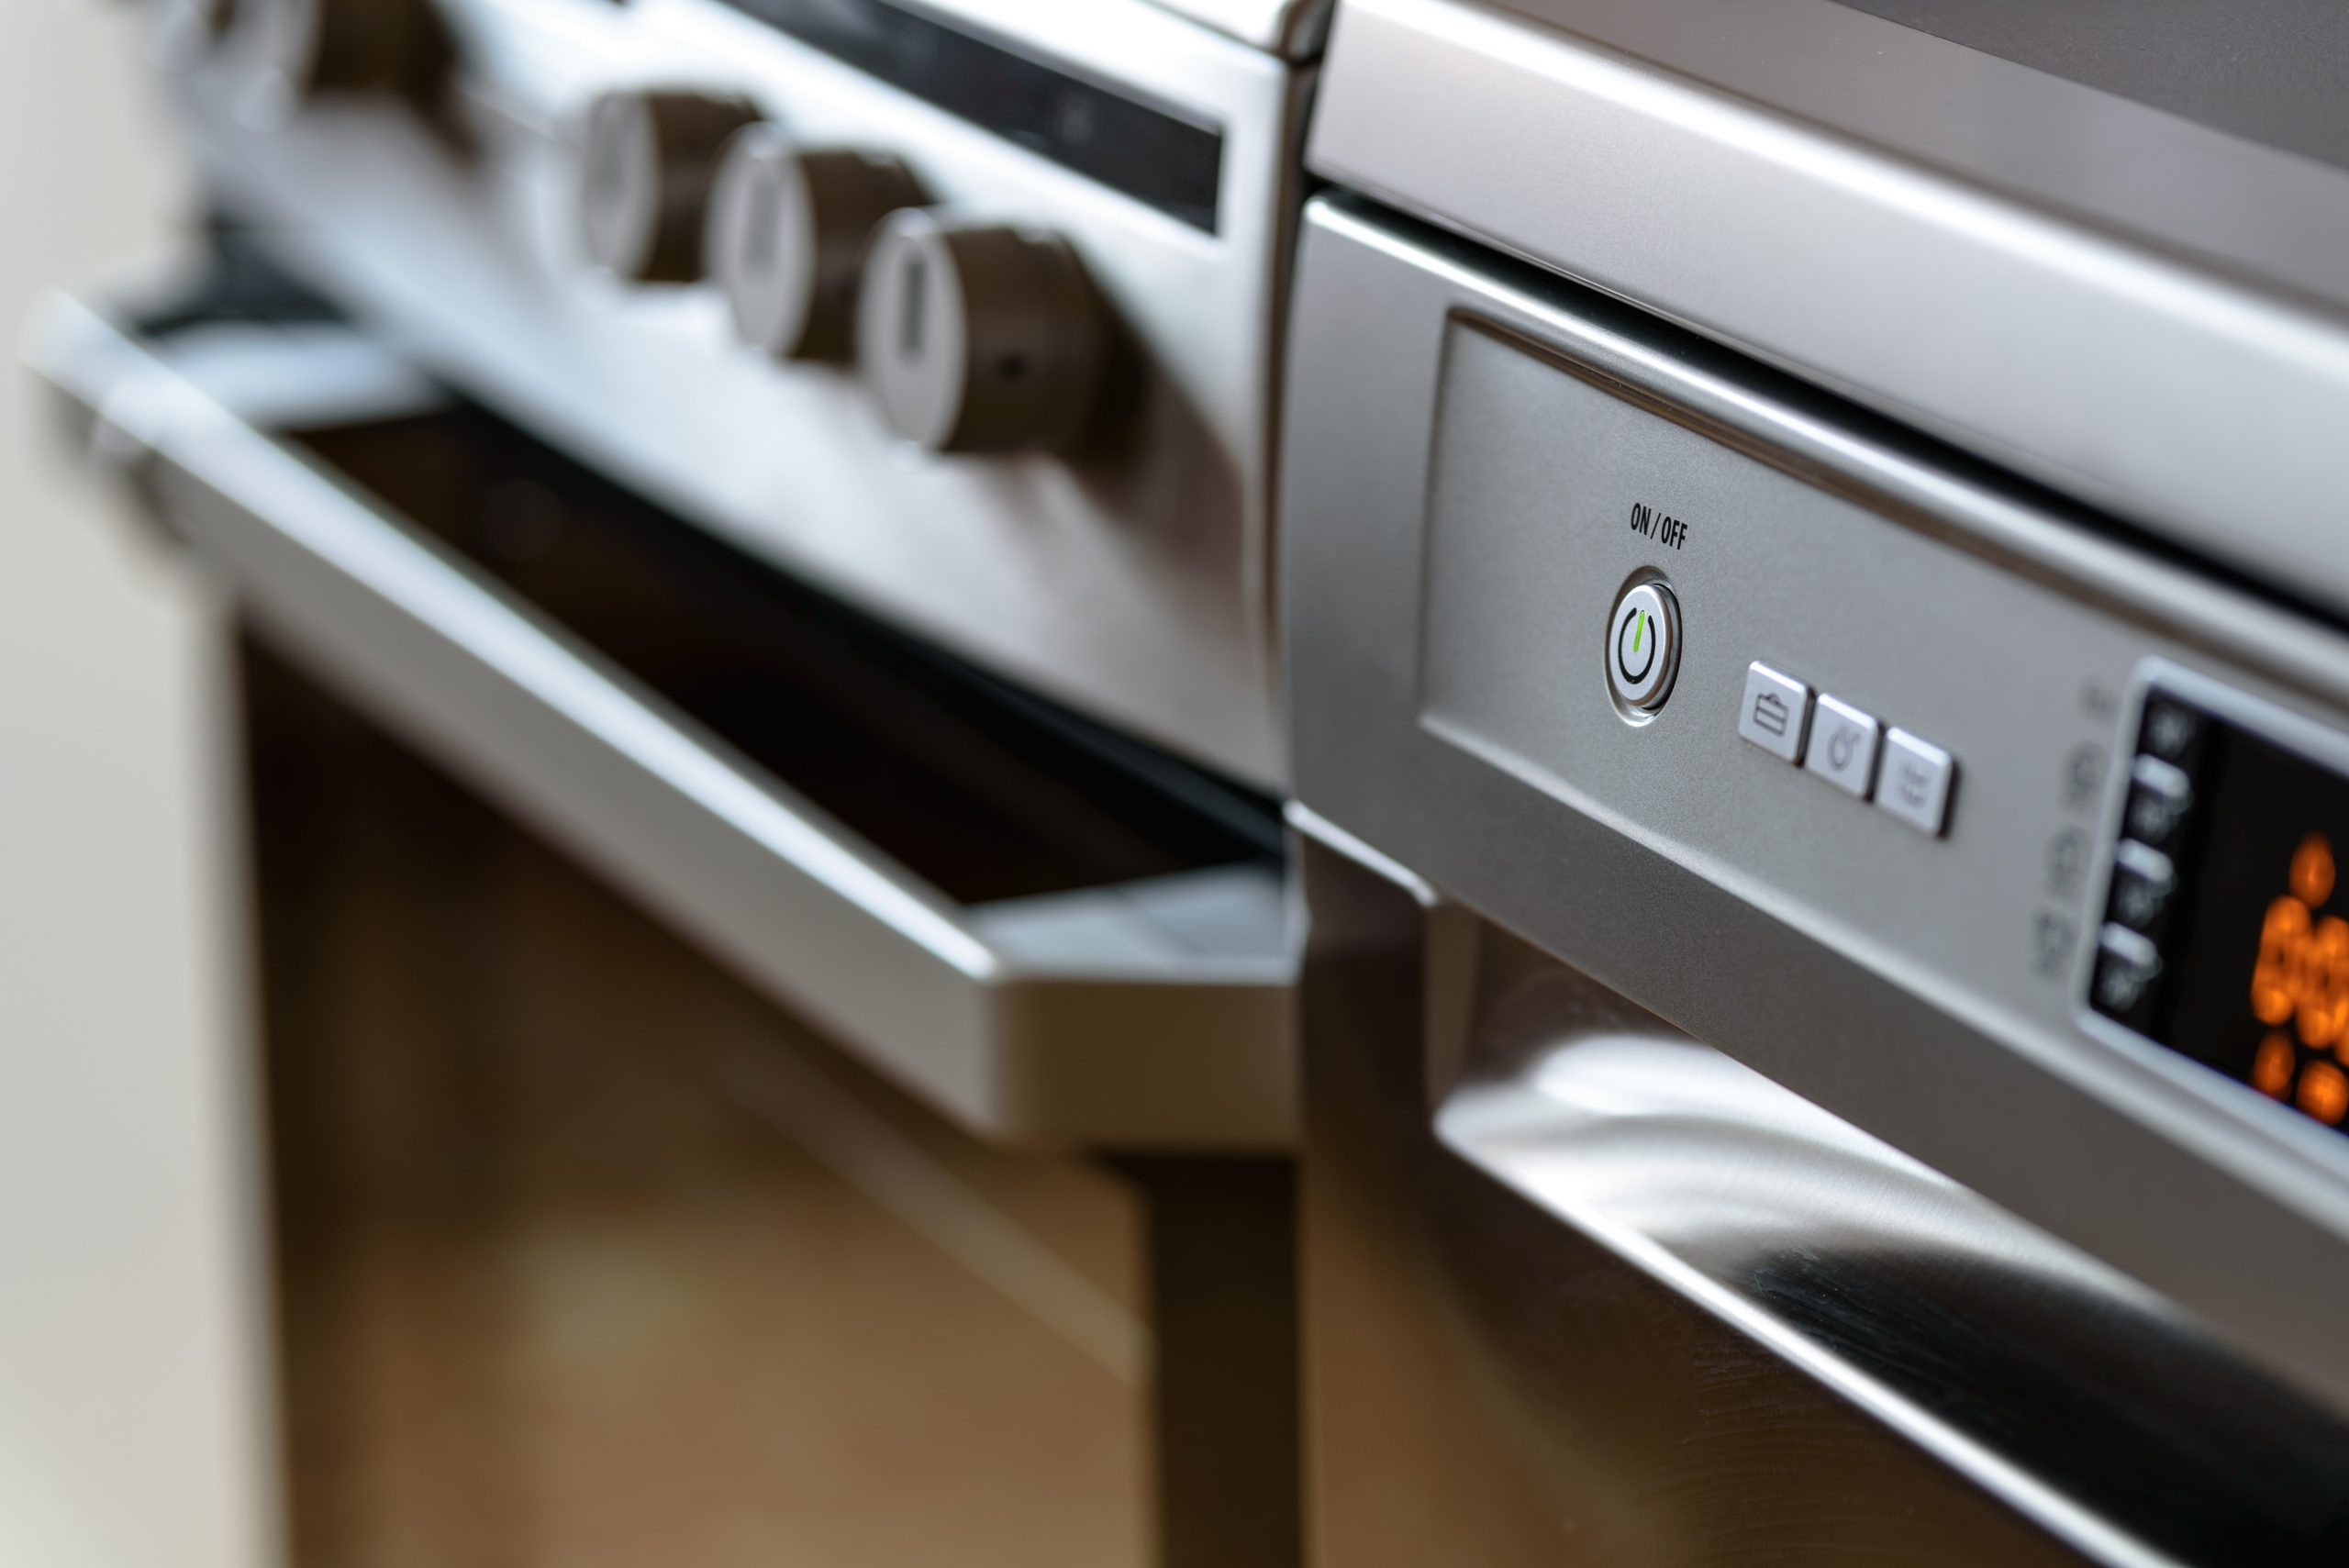 Write instructions for your appliances when hosting